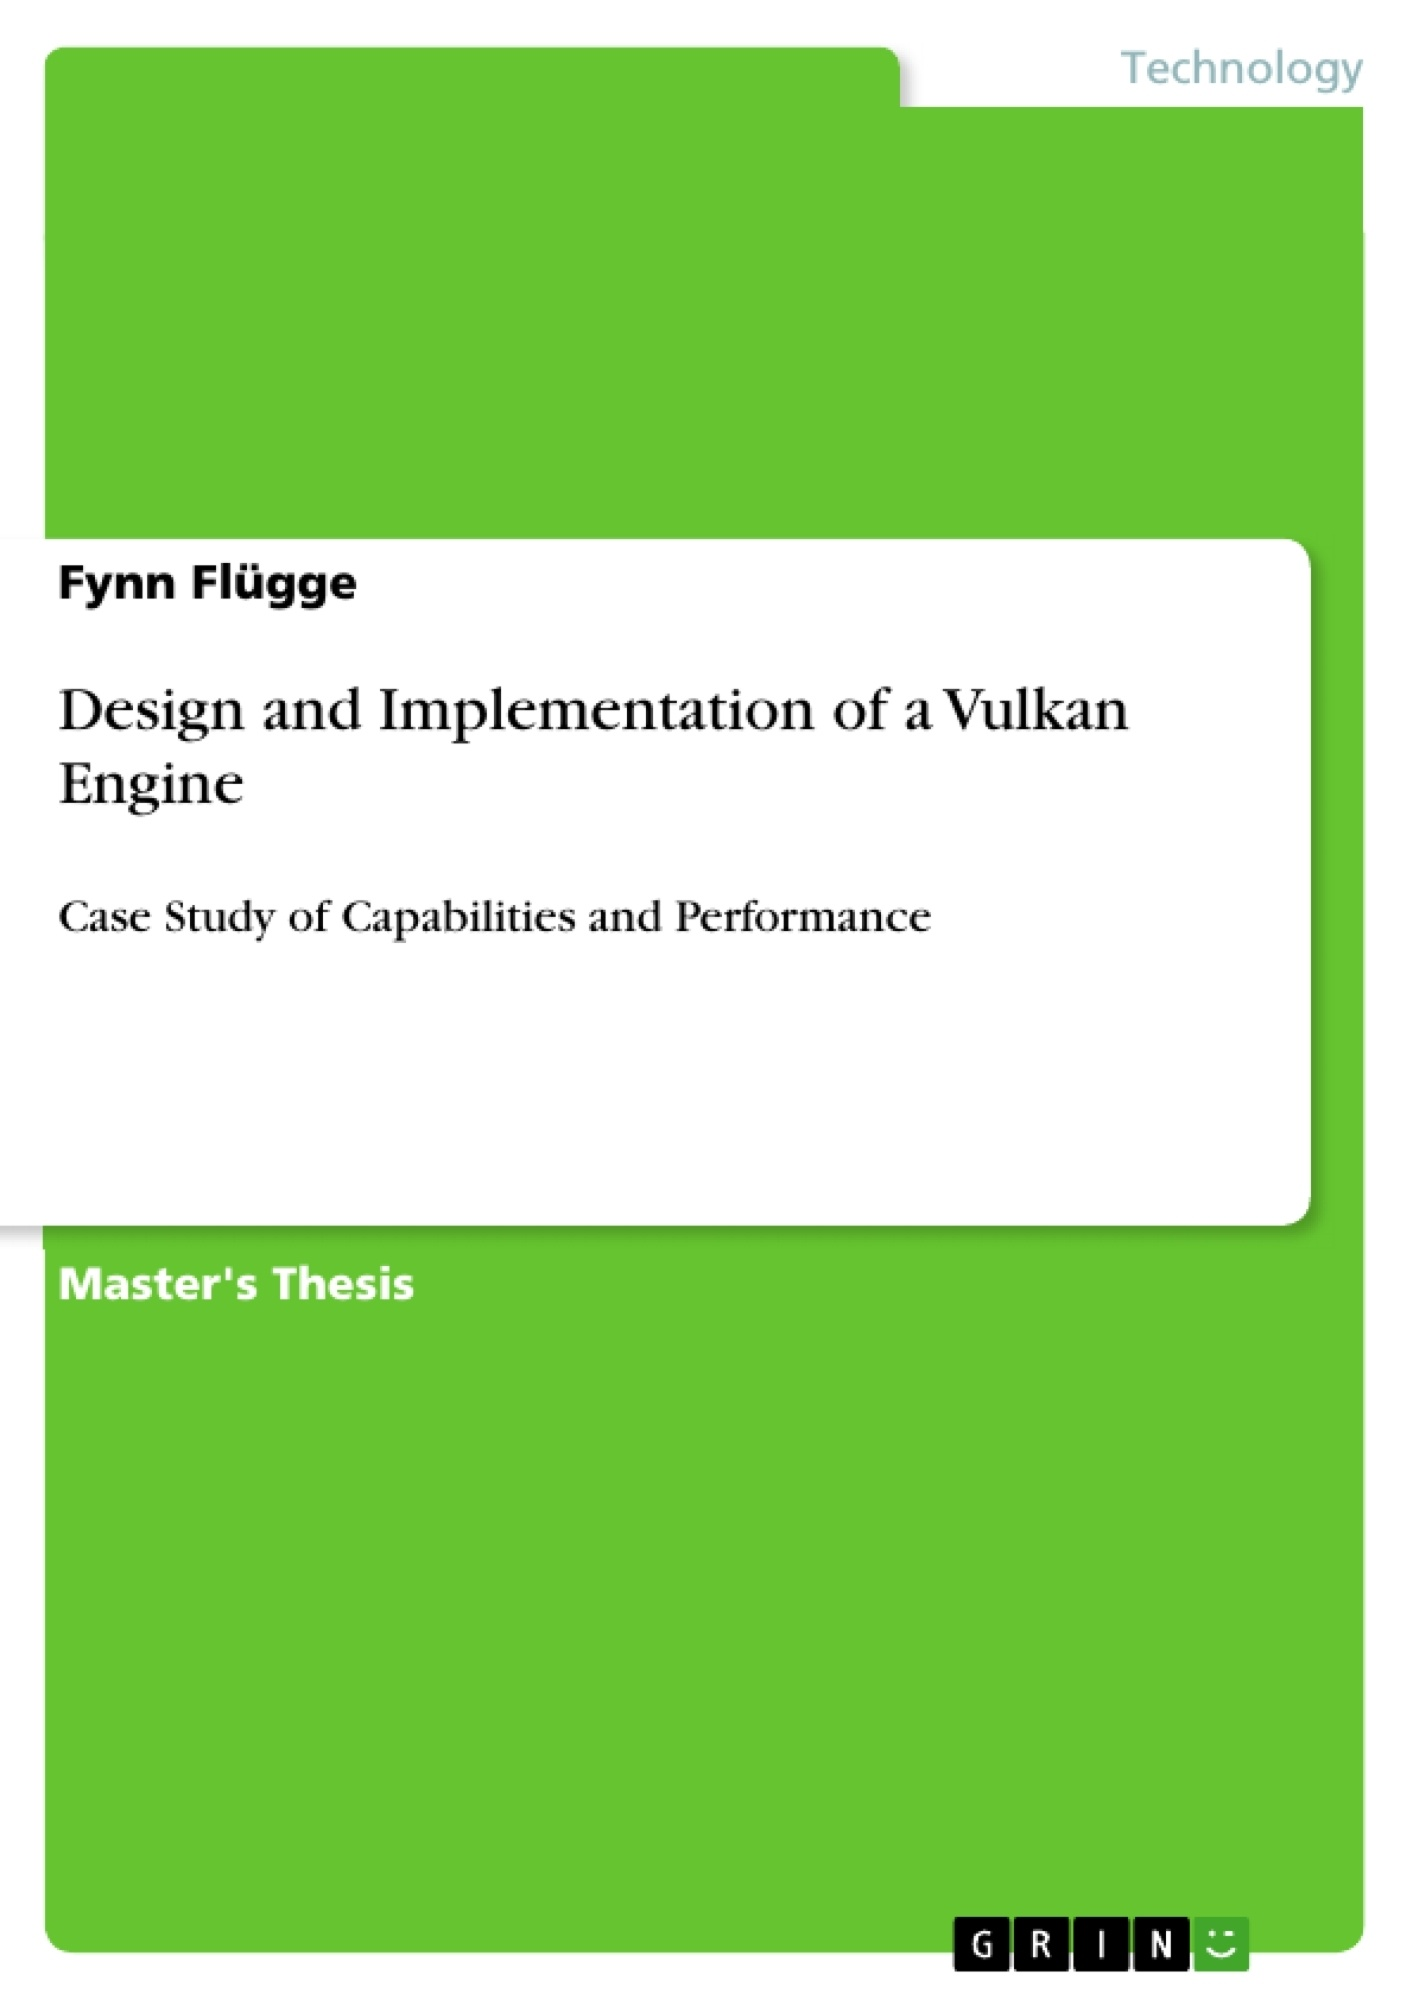 Title: Design and Implementation of a Vulkan Engine